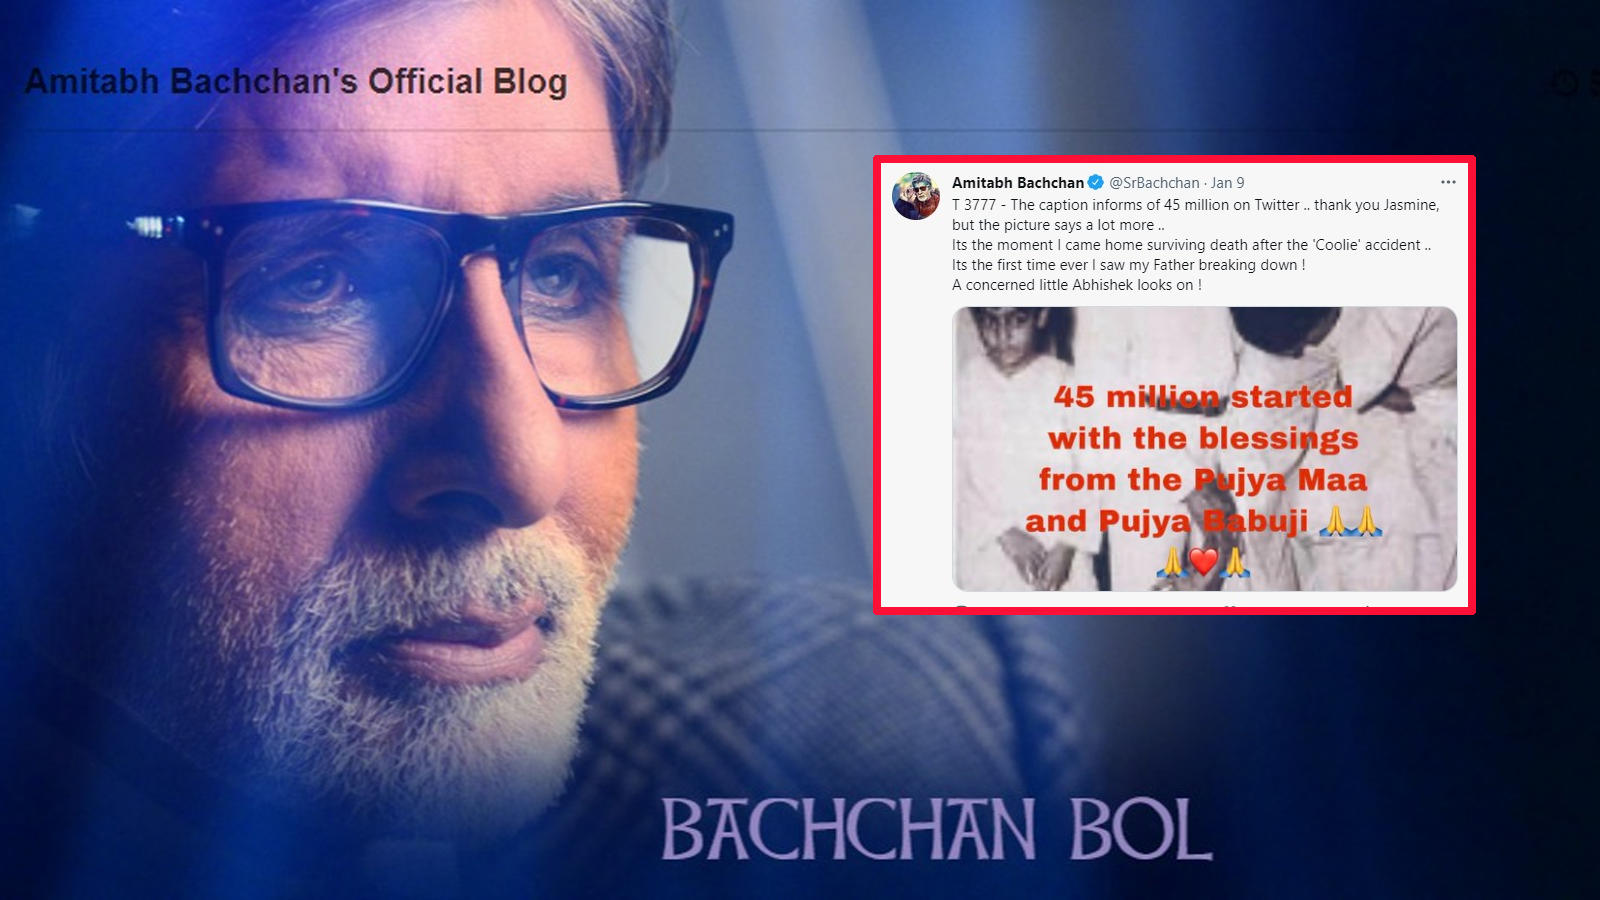 throwback-video-of-amitabh-bachchan-returning-home-after-recovering-from-the-near-fatal-accident-on-coolie-sets-goes-viral